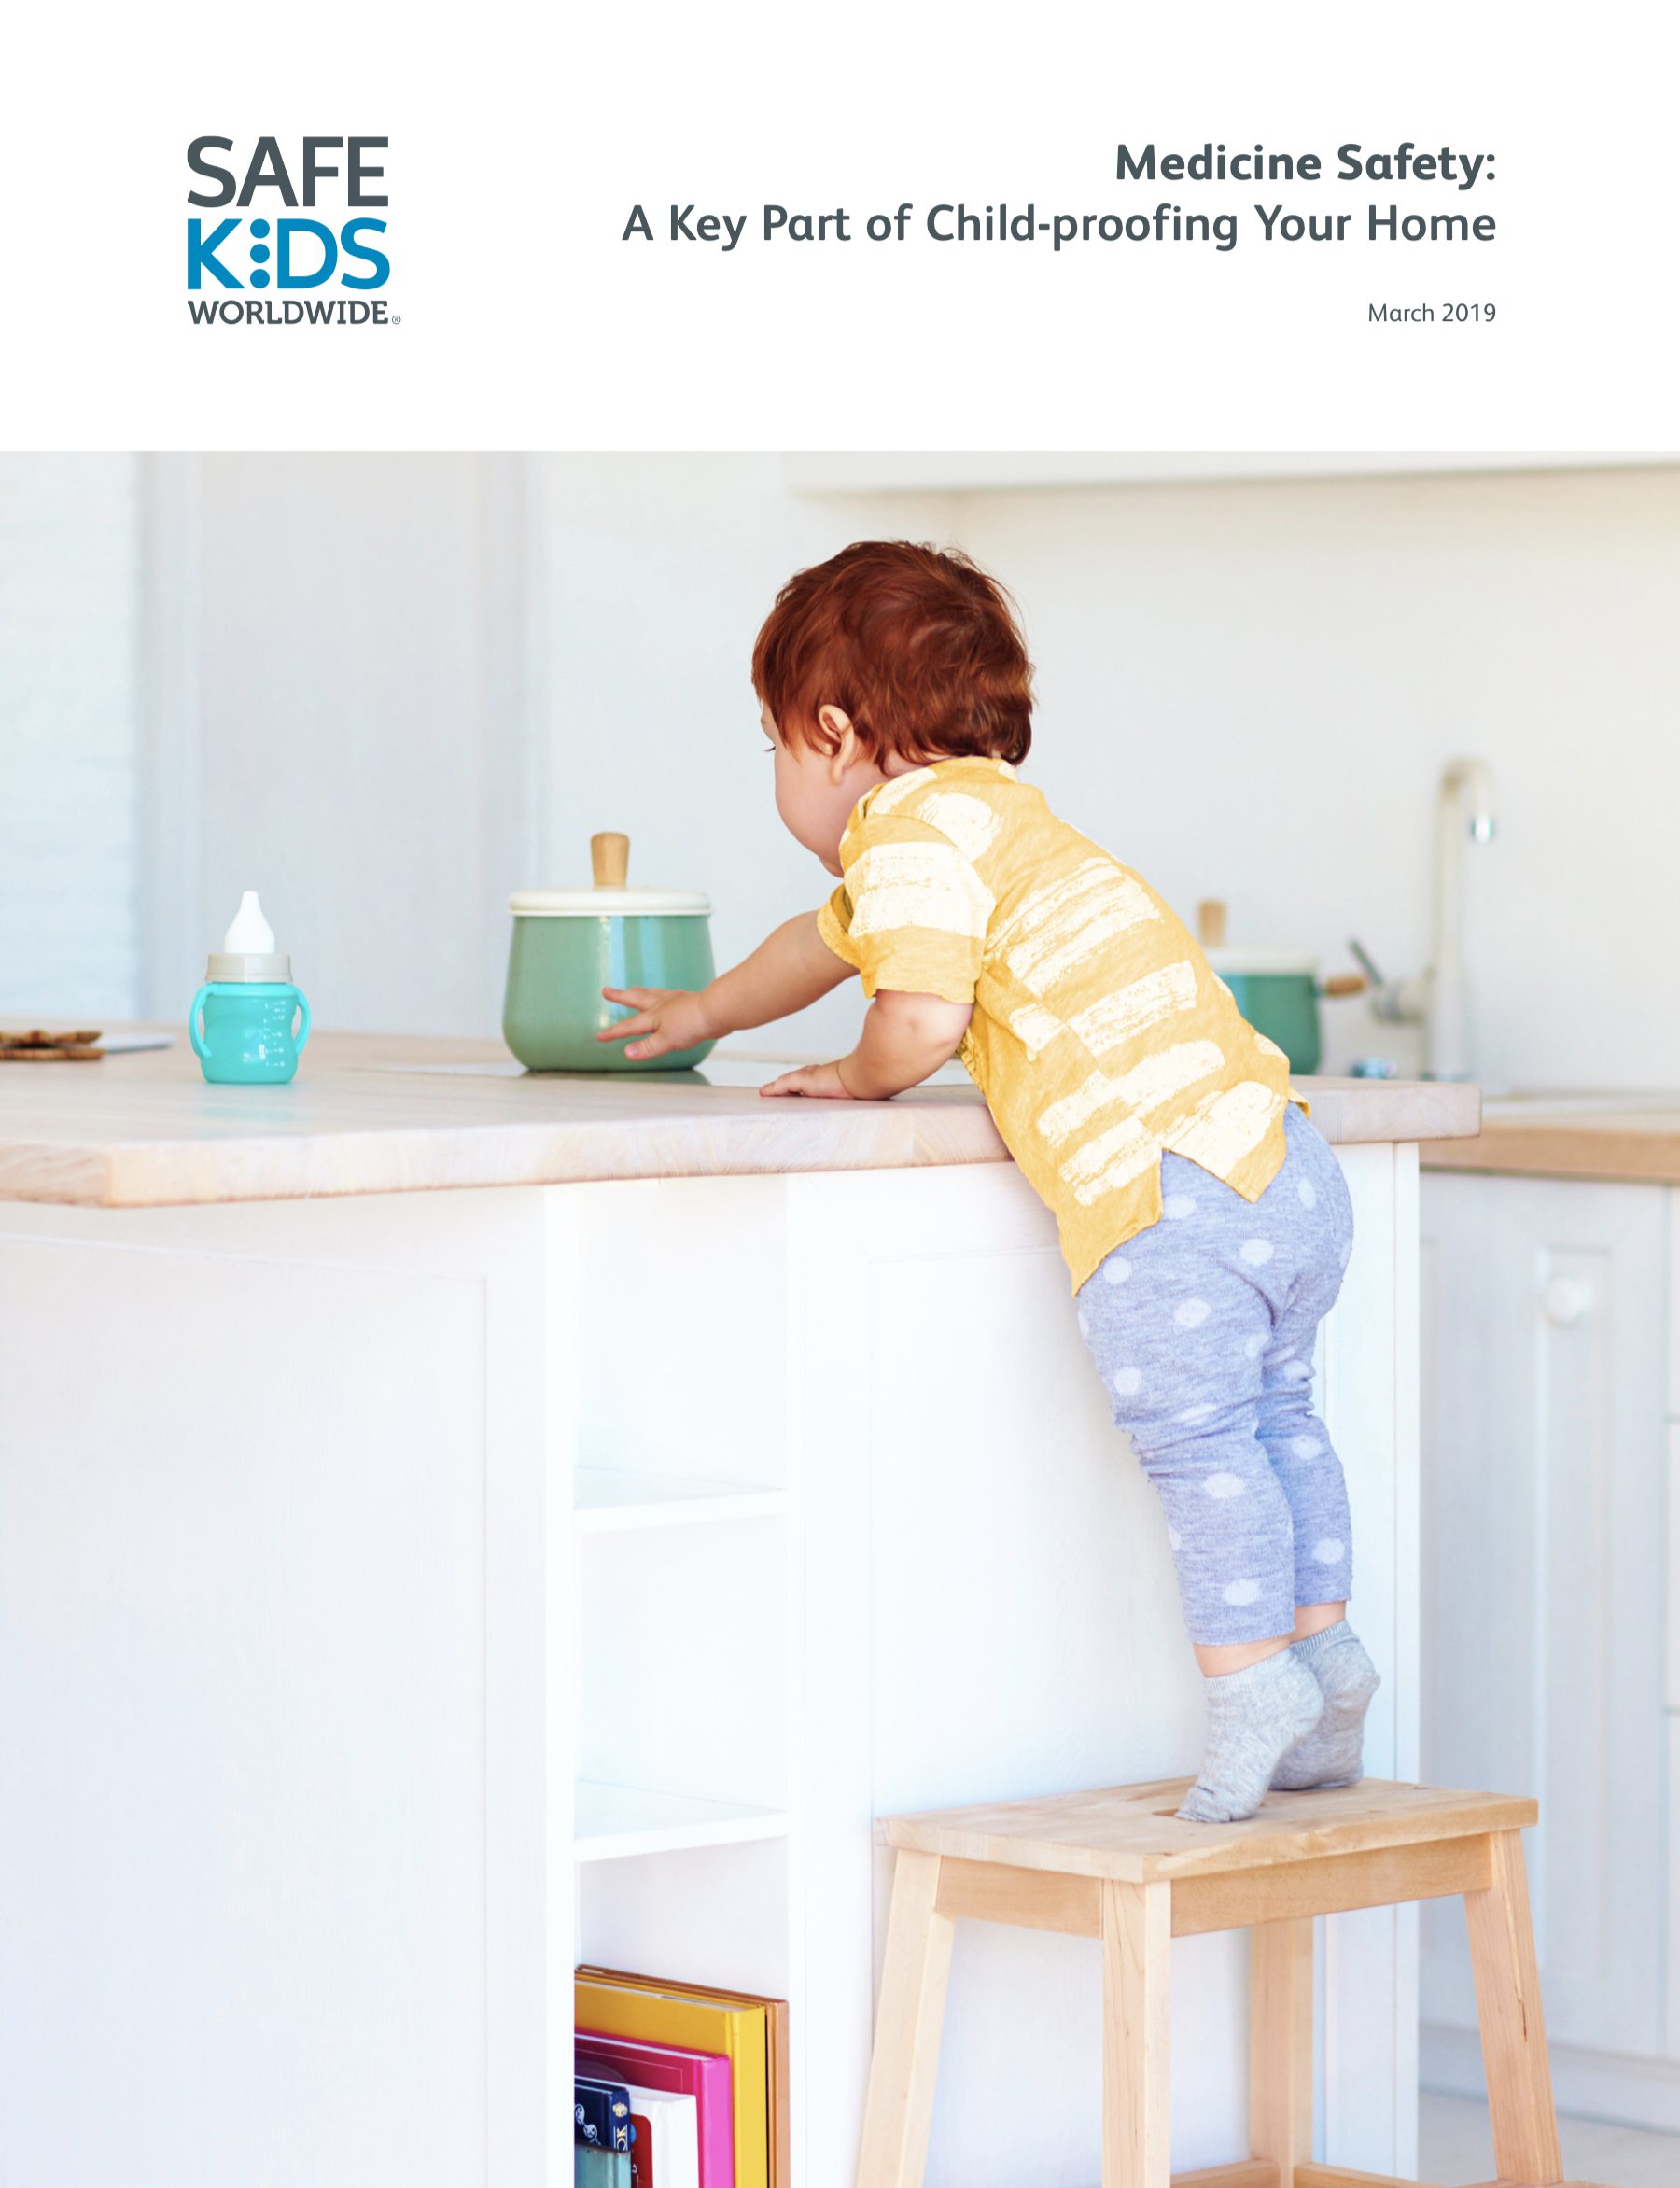 Child Proofing Your Home To Keep Your Child Safe Around Medicine Safe Kids Worldwide